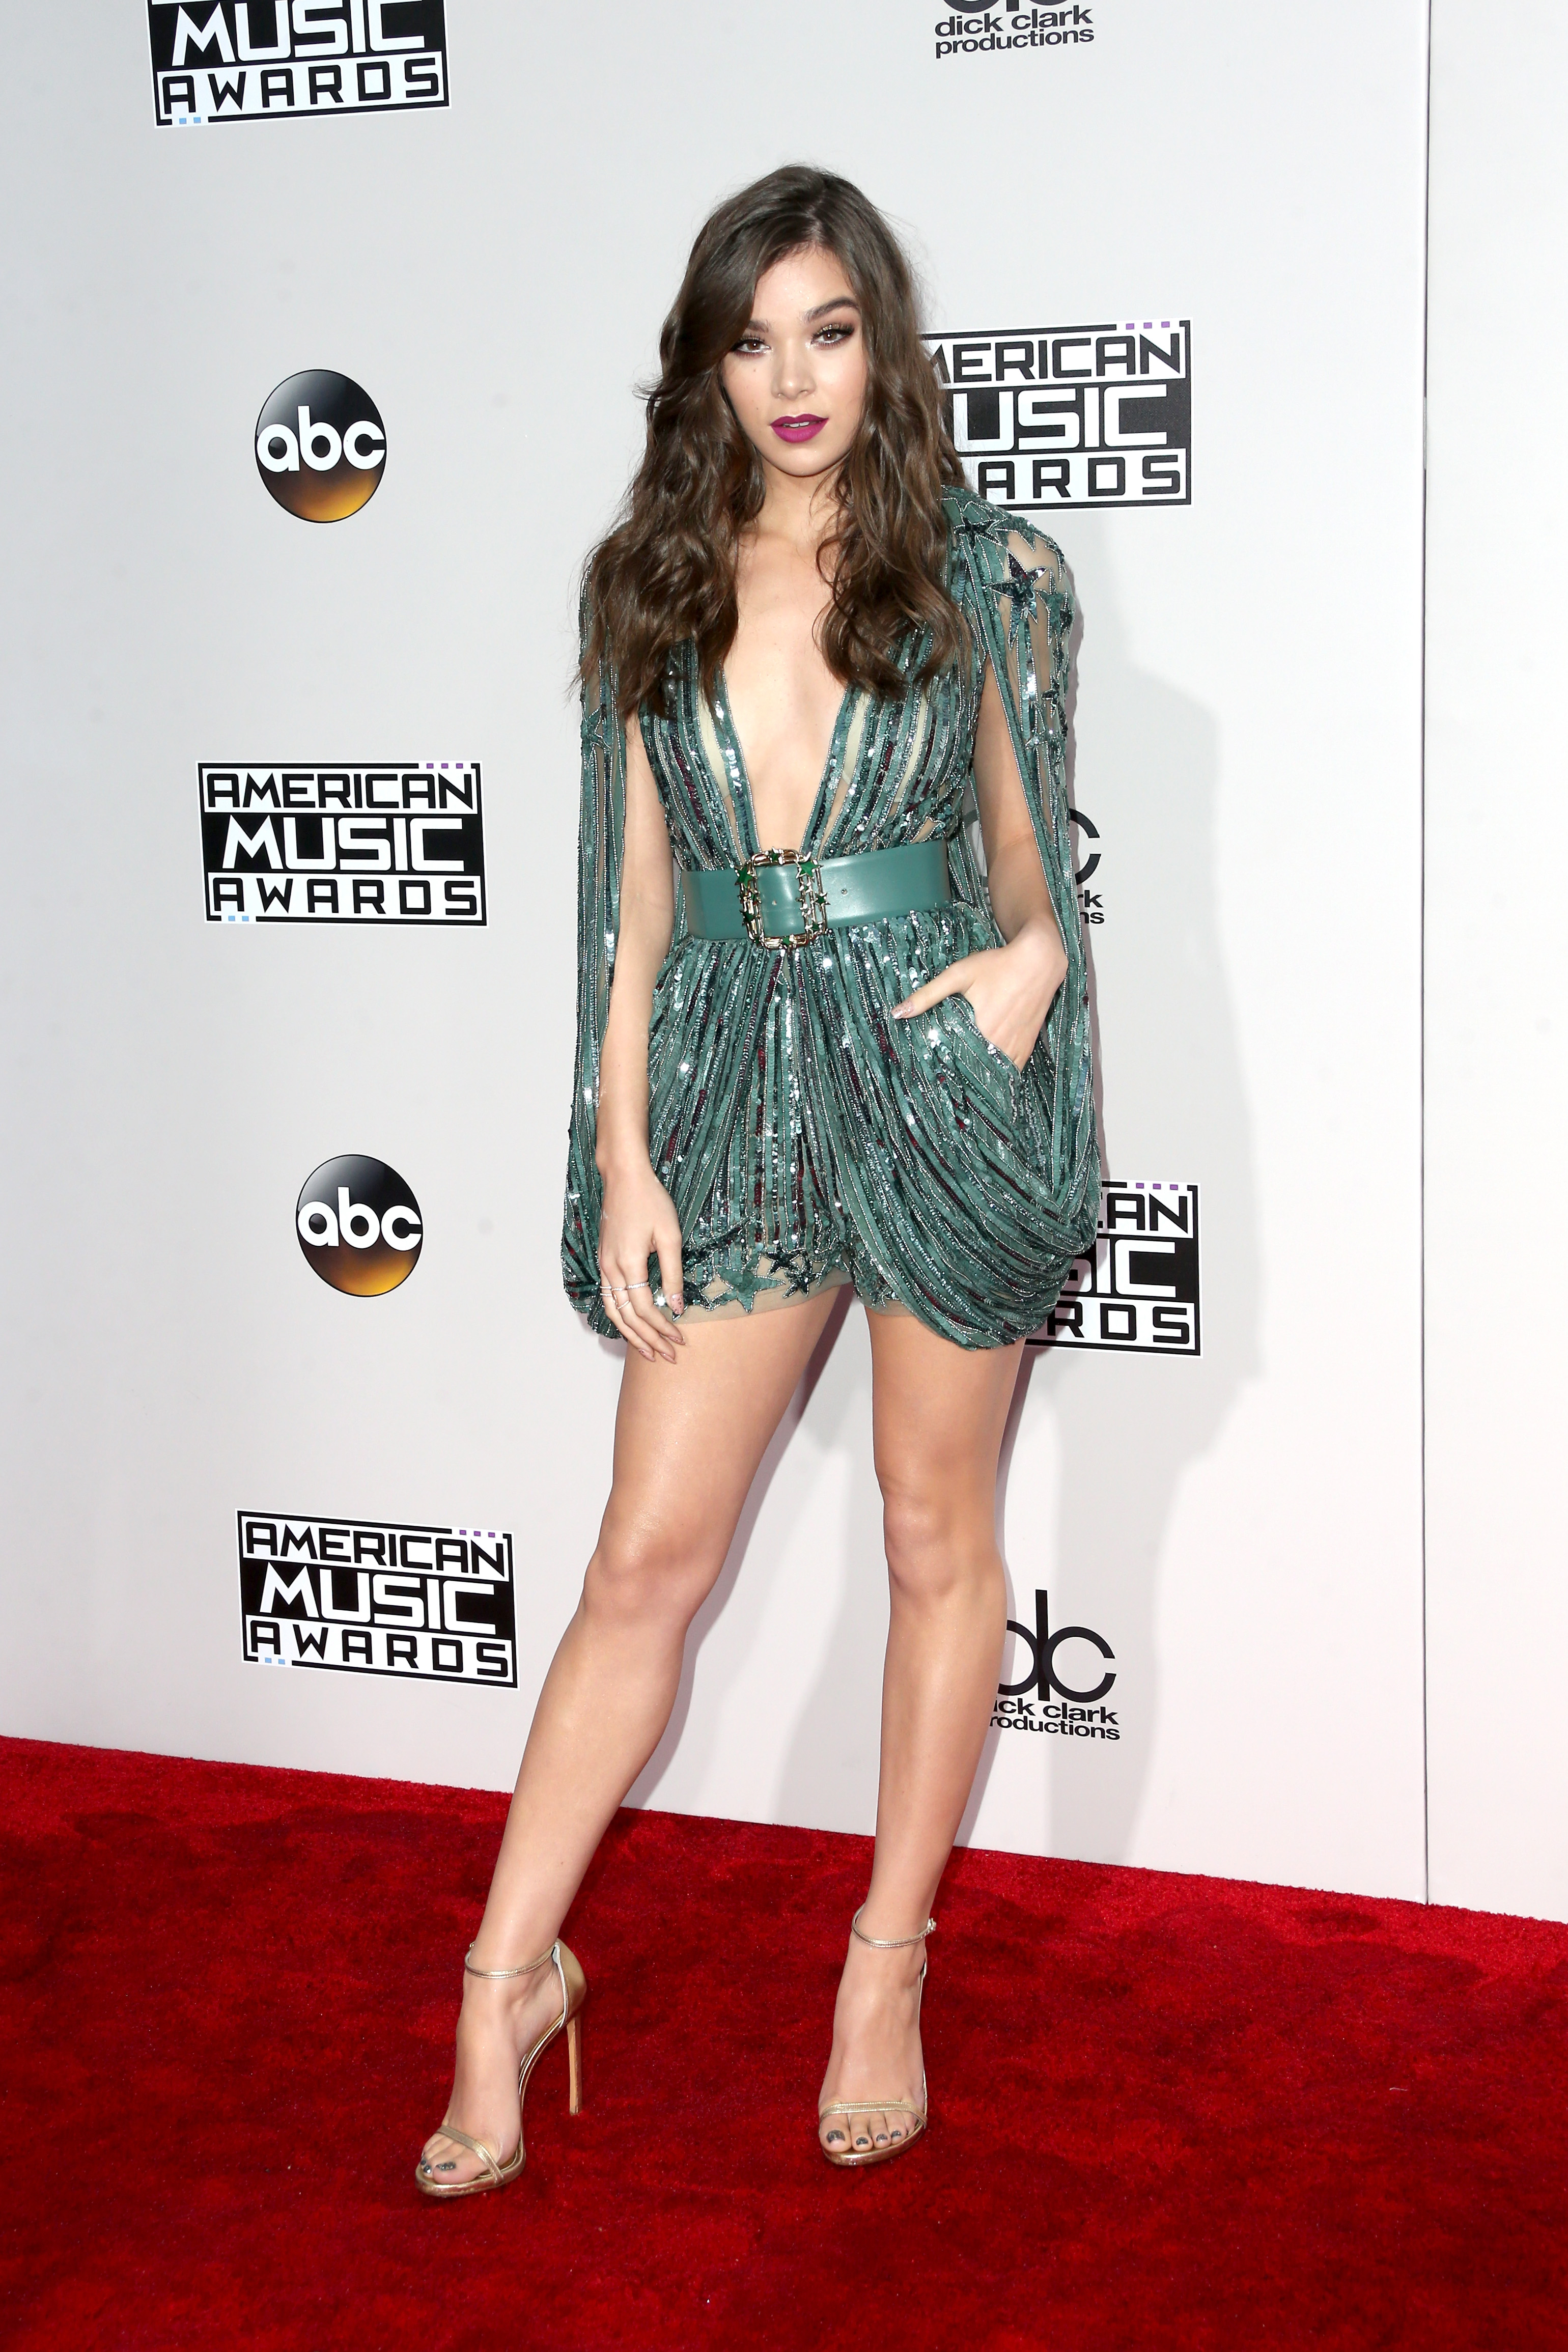 LOS ANGELES, CA - NOVEMBER 20: Actress Hailee Steinfeld attends the 2016 American Music Awards at Microsoft Theater on November 20, 2016 in Los Angeles, California. (Photo by Frederick M. Brown/Getty Images)